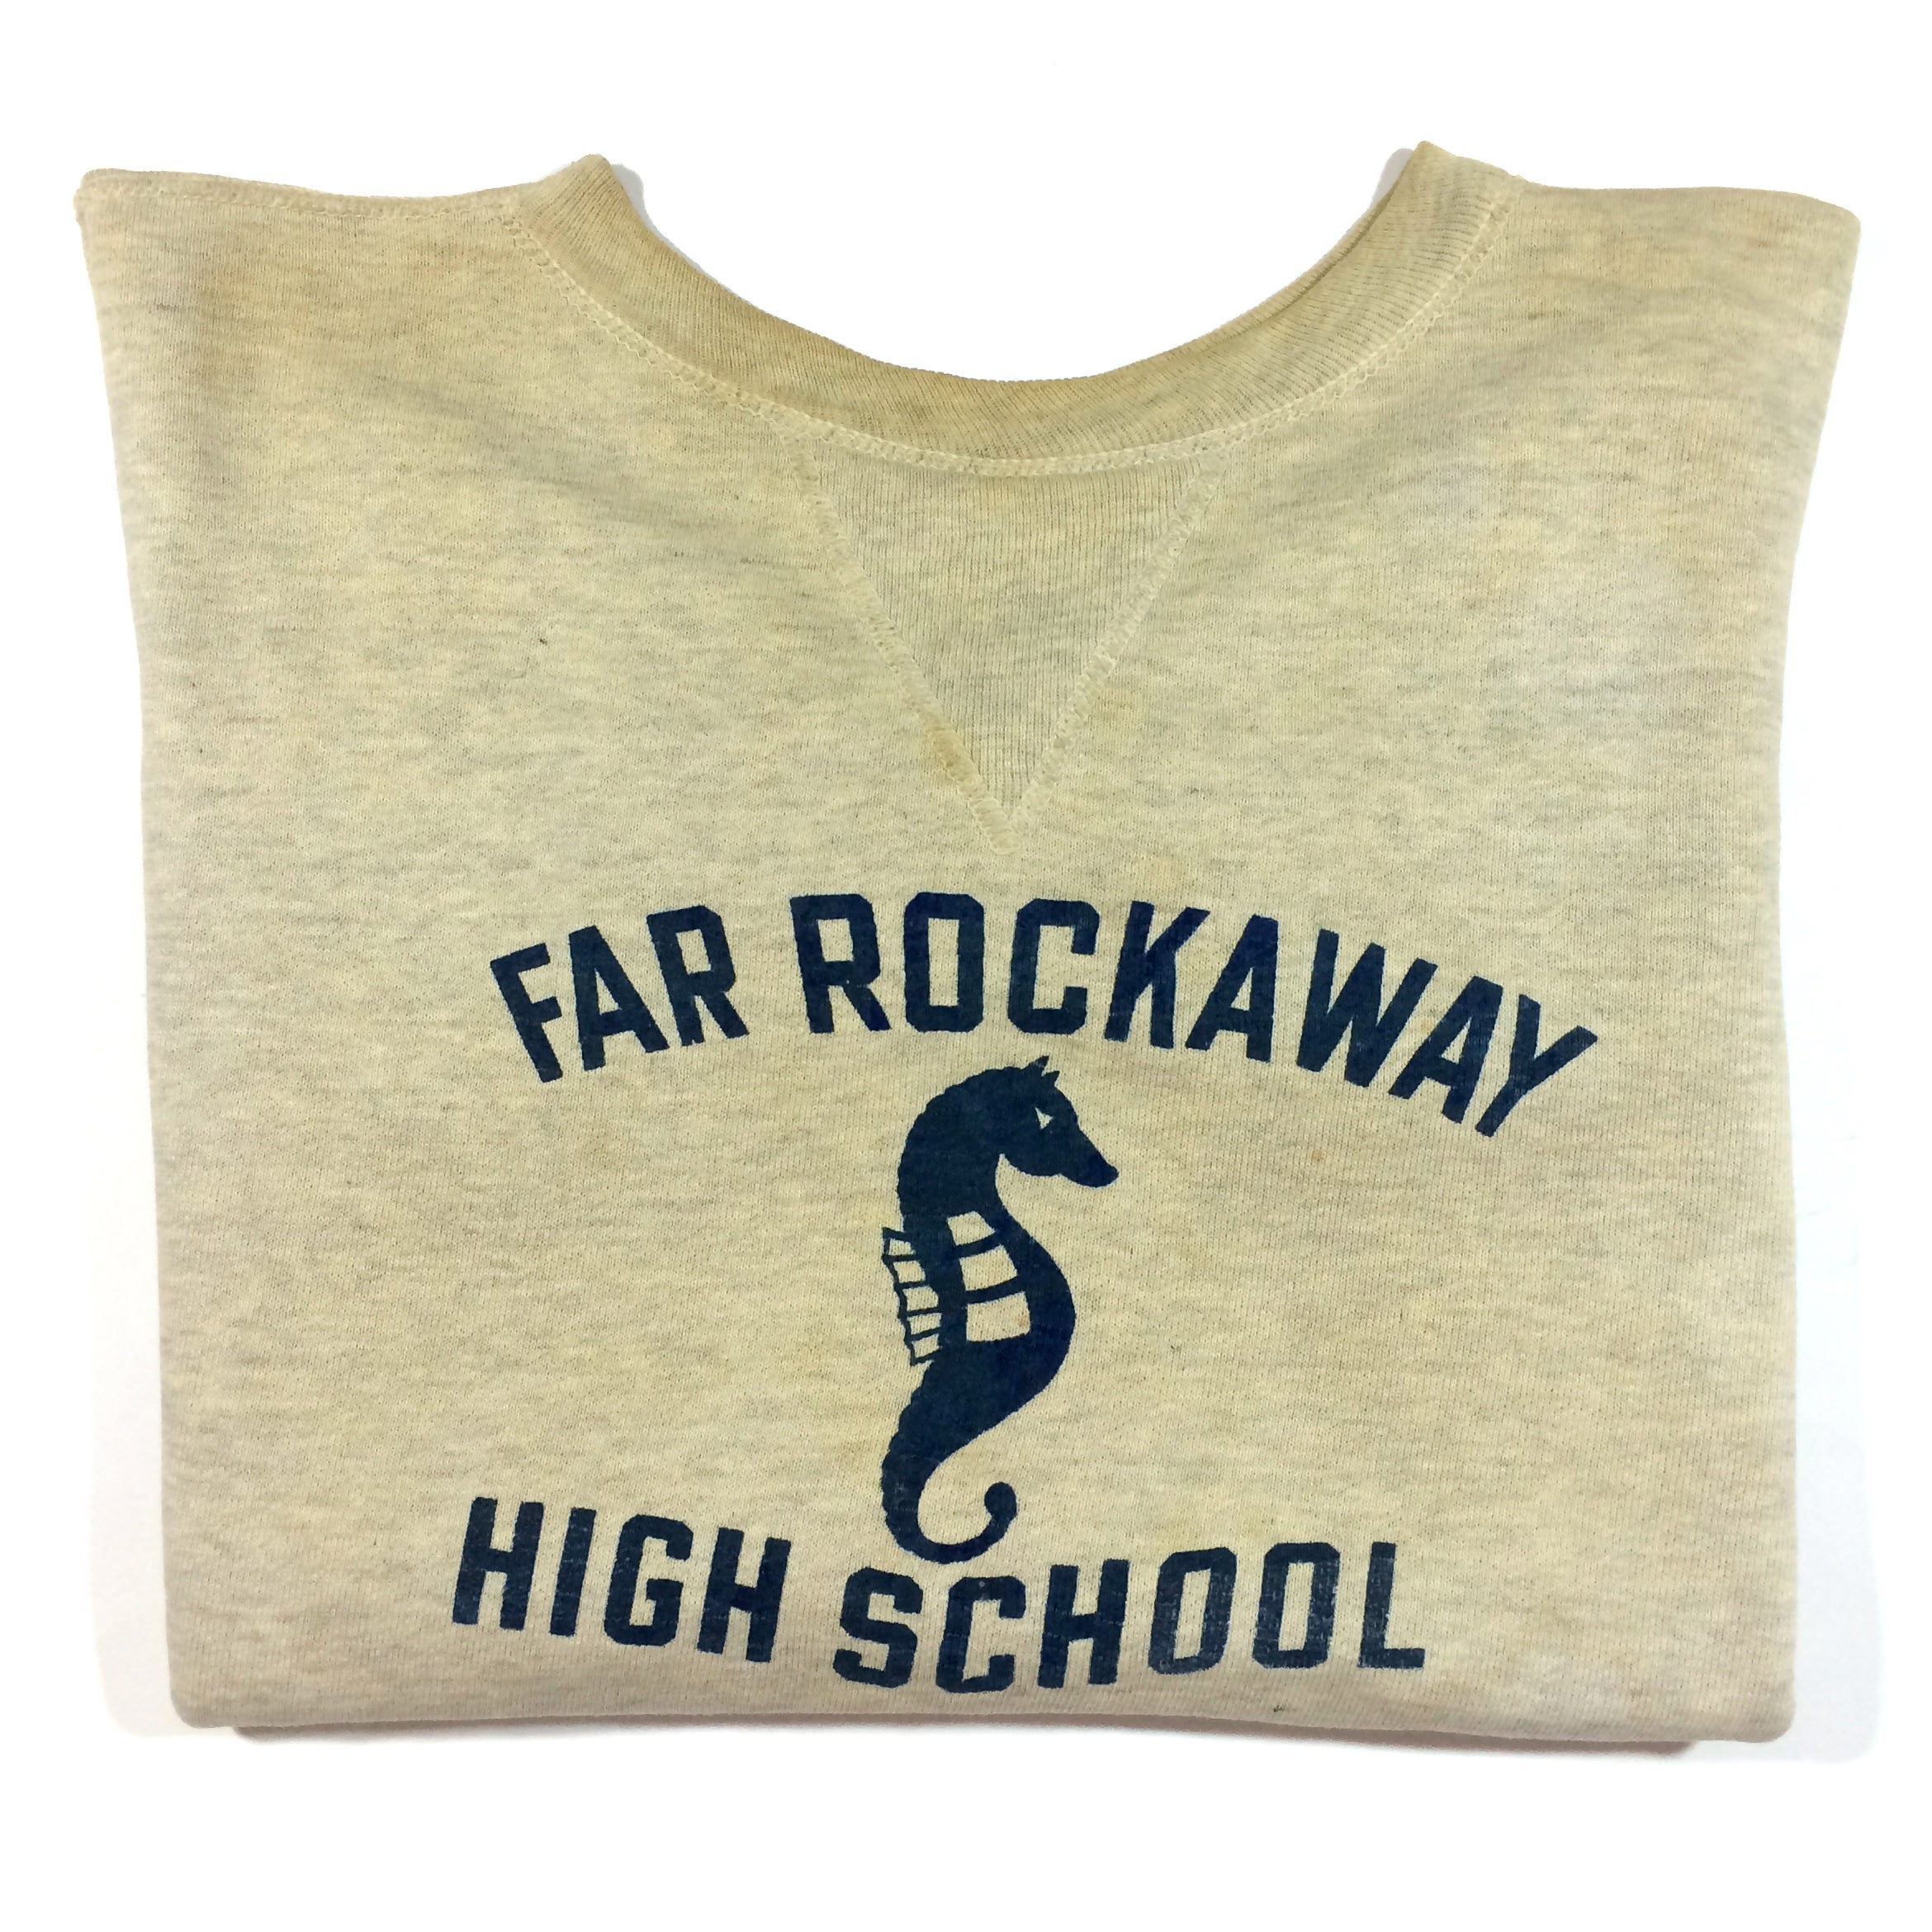 Image of Vintage 1950's High School Sweatshirt